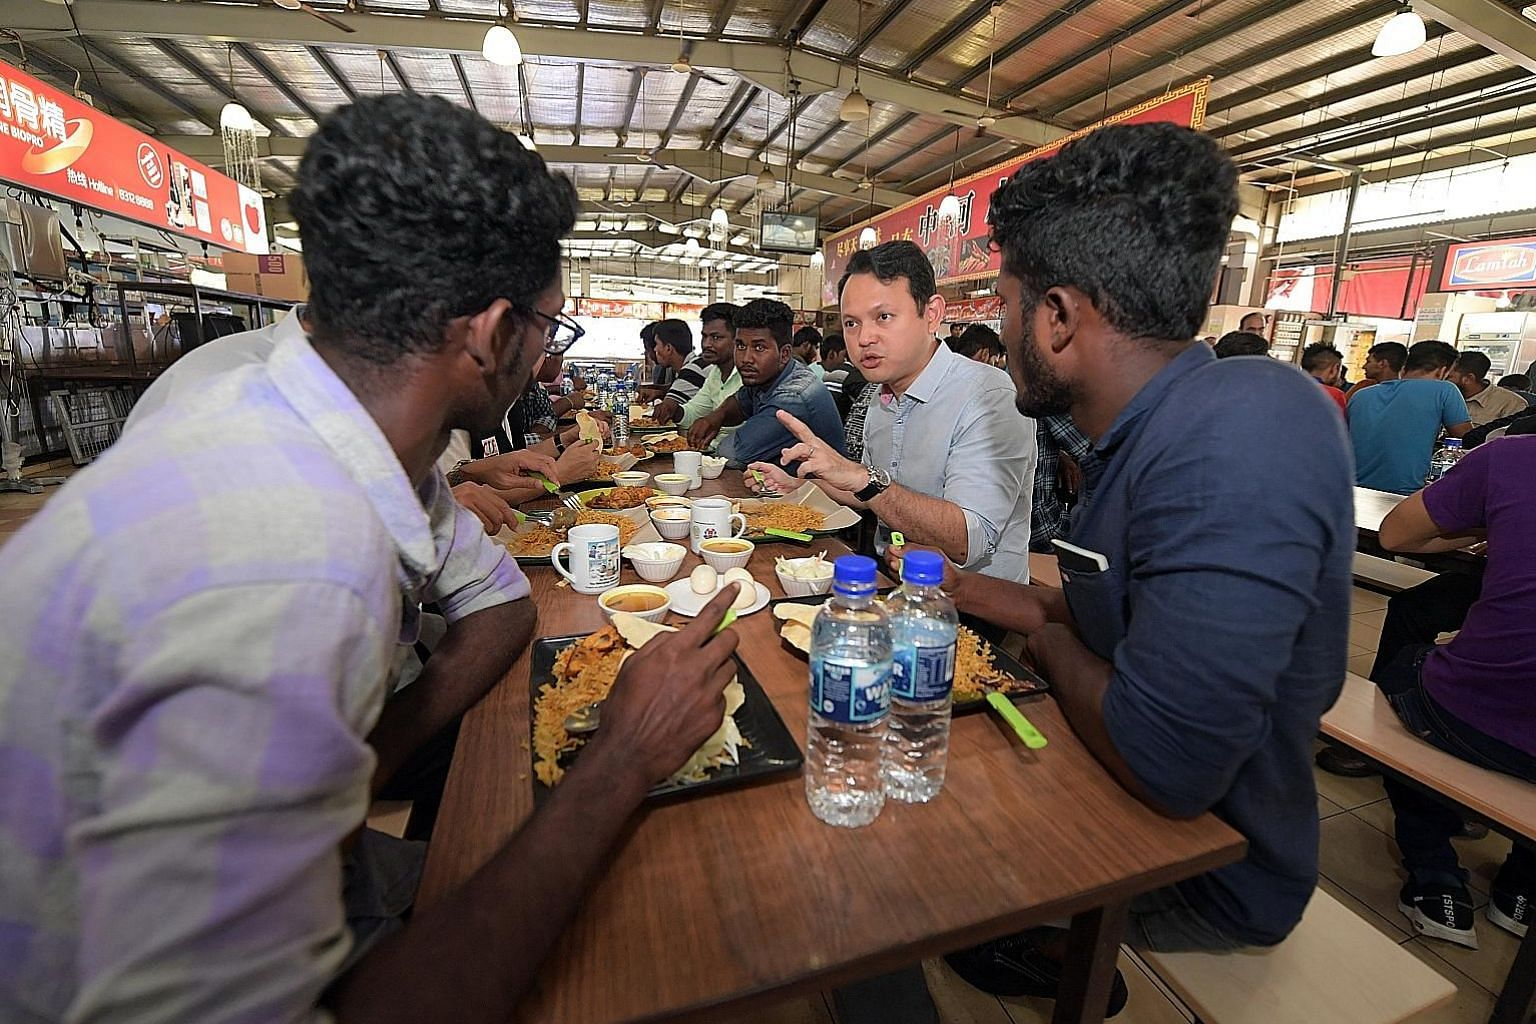 Minister of State for Manpower Zaqy Mohamad sharing a meal yesterday with foreign workers attending the Settling-In Programme at the SCAL Recreation Centre in Soon Lee Road. The one-day orientation course is currently compulsory for all new non-Malay